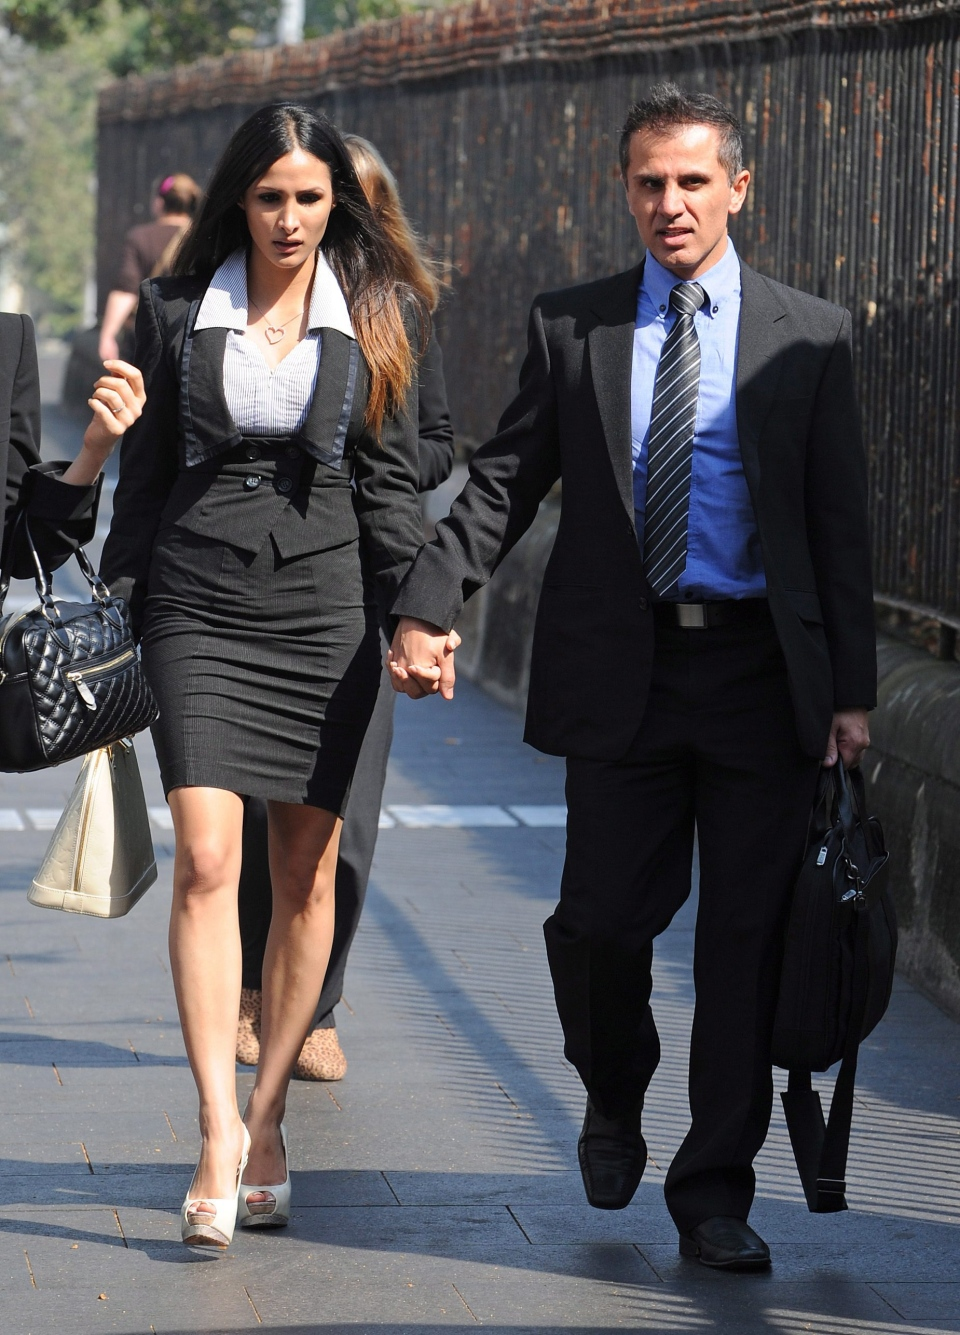 Australian Simon Gittany arrives at the Supreme Court in Sydney, Australia with his current girlfriend Rachelle Louise, Sydney, in this Friday, Nov. 8, 2013 photo. (AAP / Dan Himbrechts)